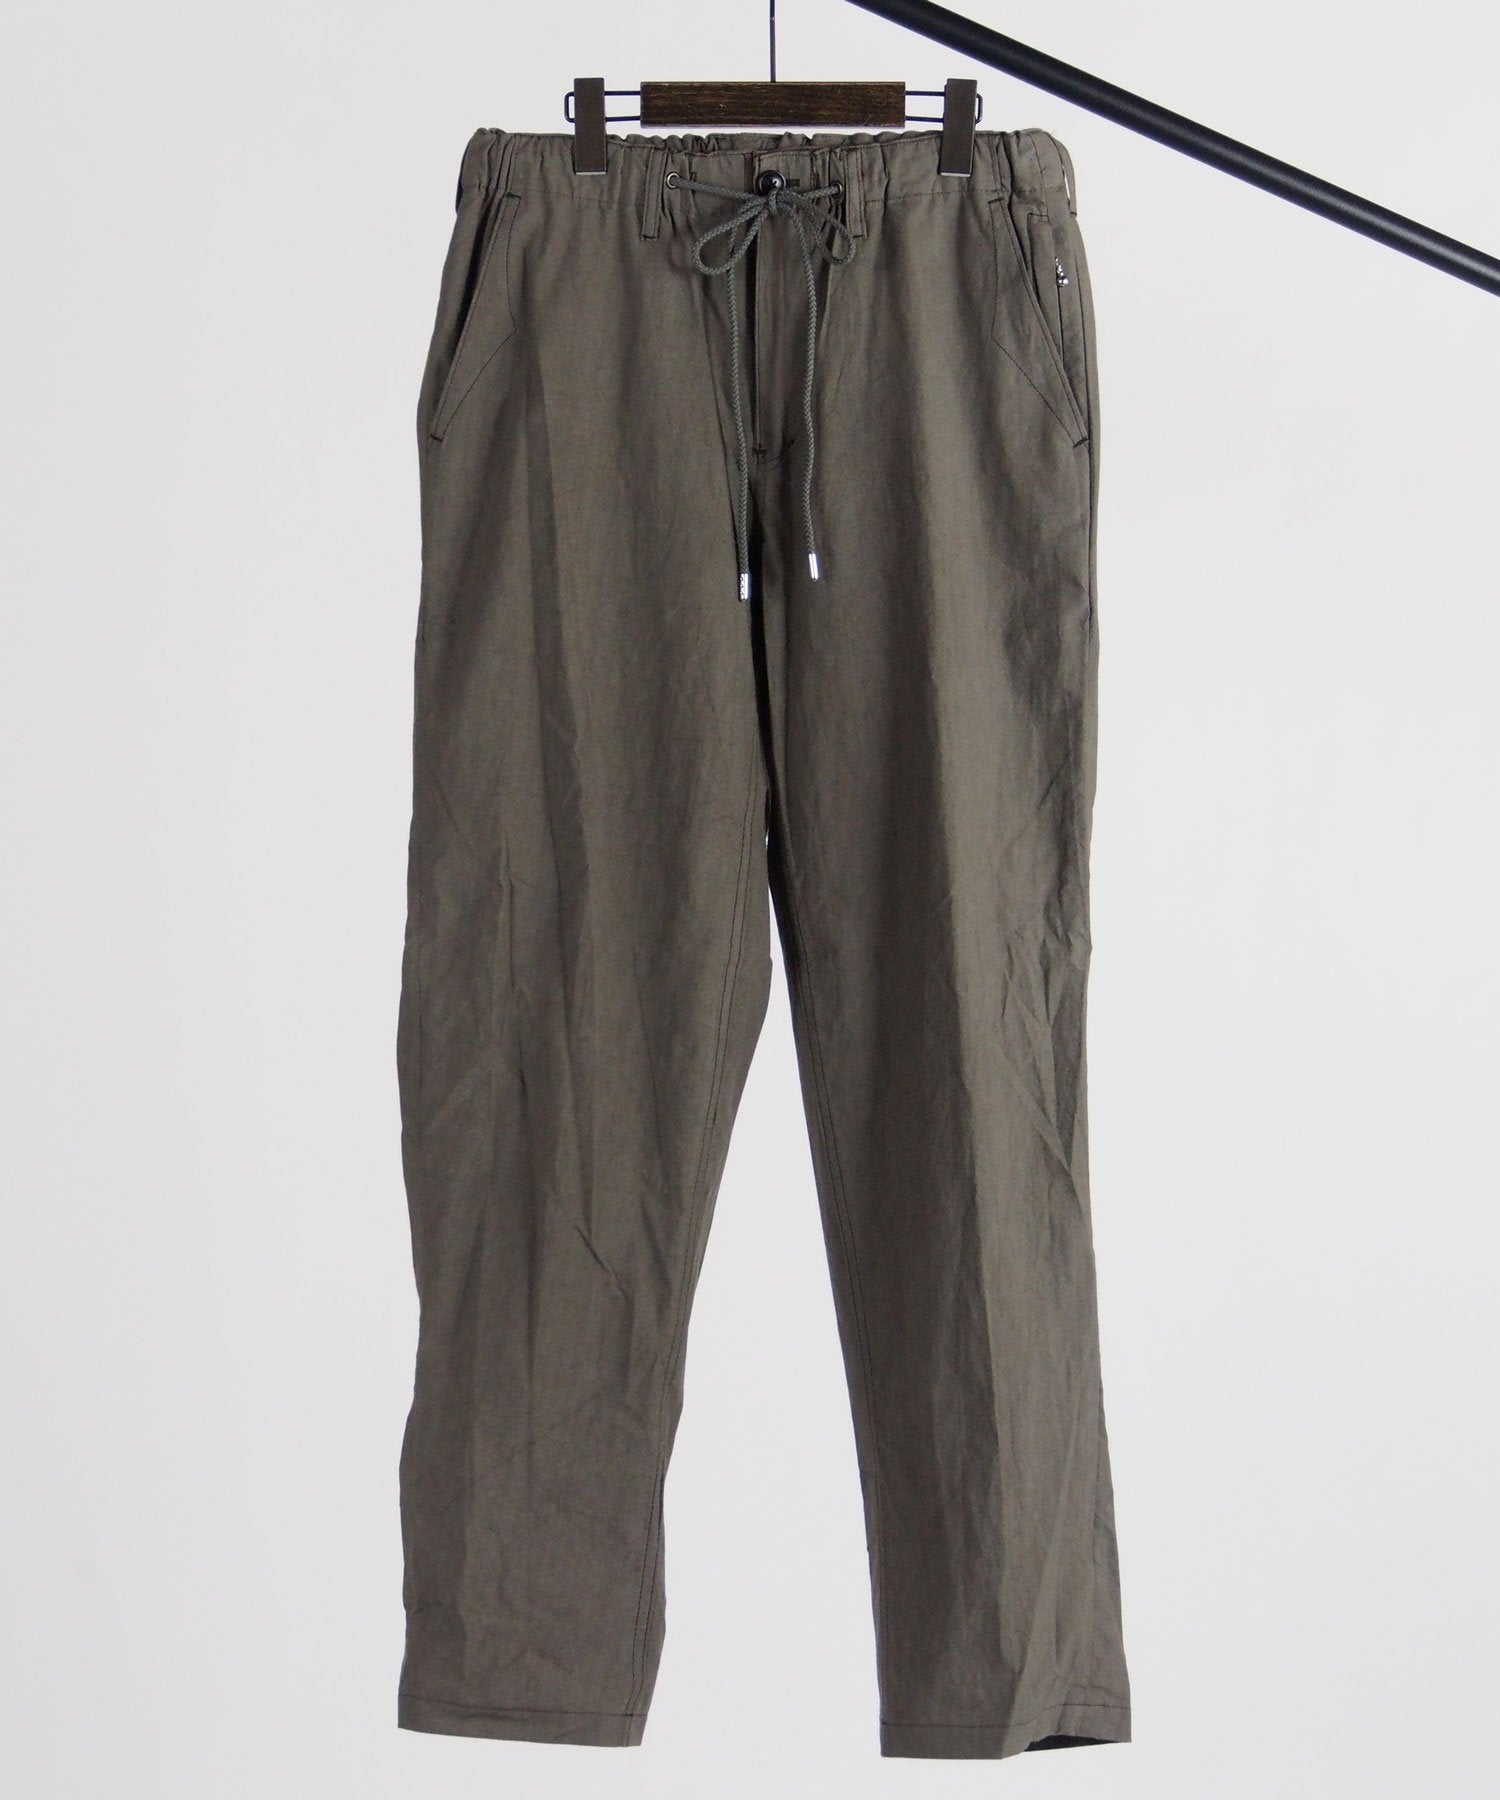 EGO TRIPPING FADE TROUSERS